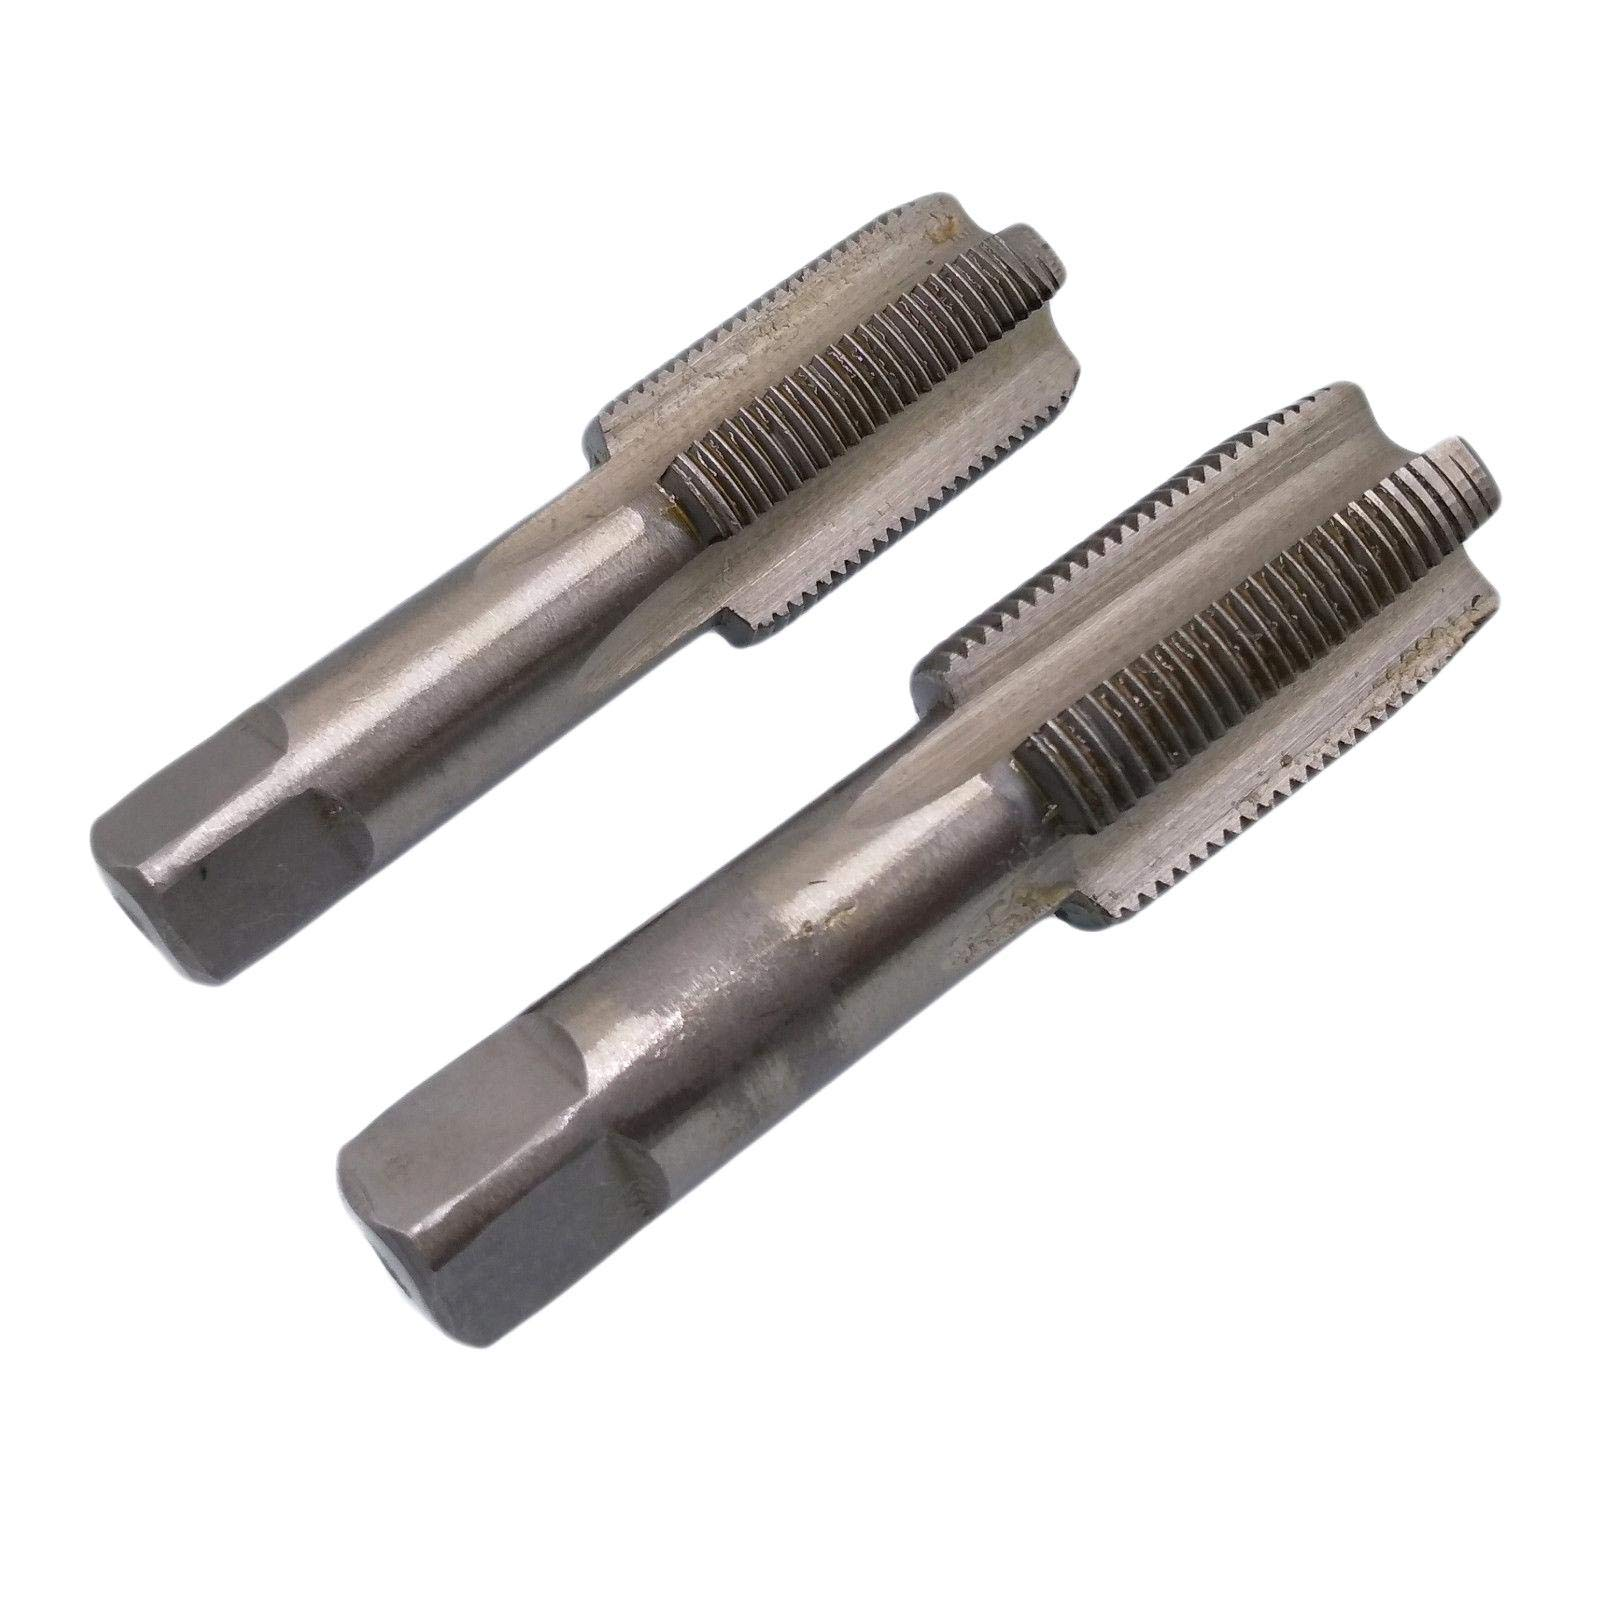 HSS 22mm x 1.5 Metric Taper and Plug Tap Right Hand Thread M22 x 1.5mm Pitch by Yodaoke